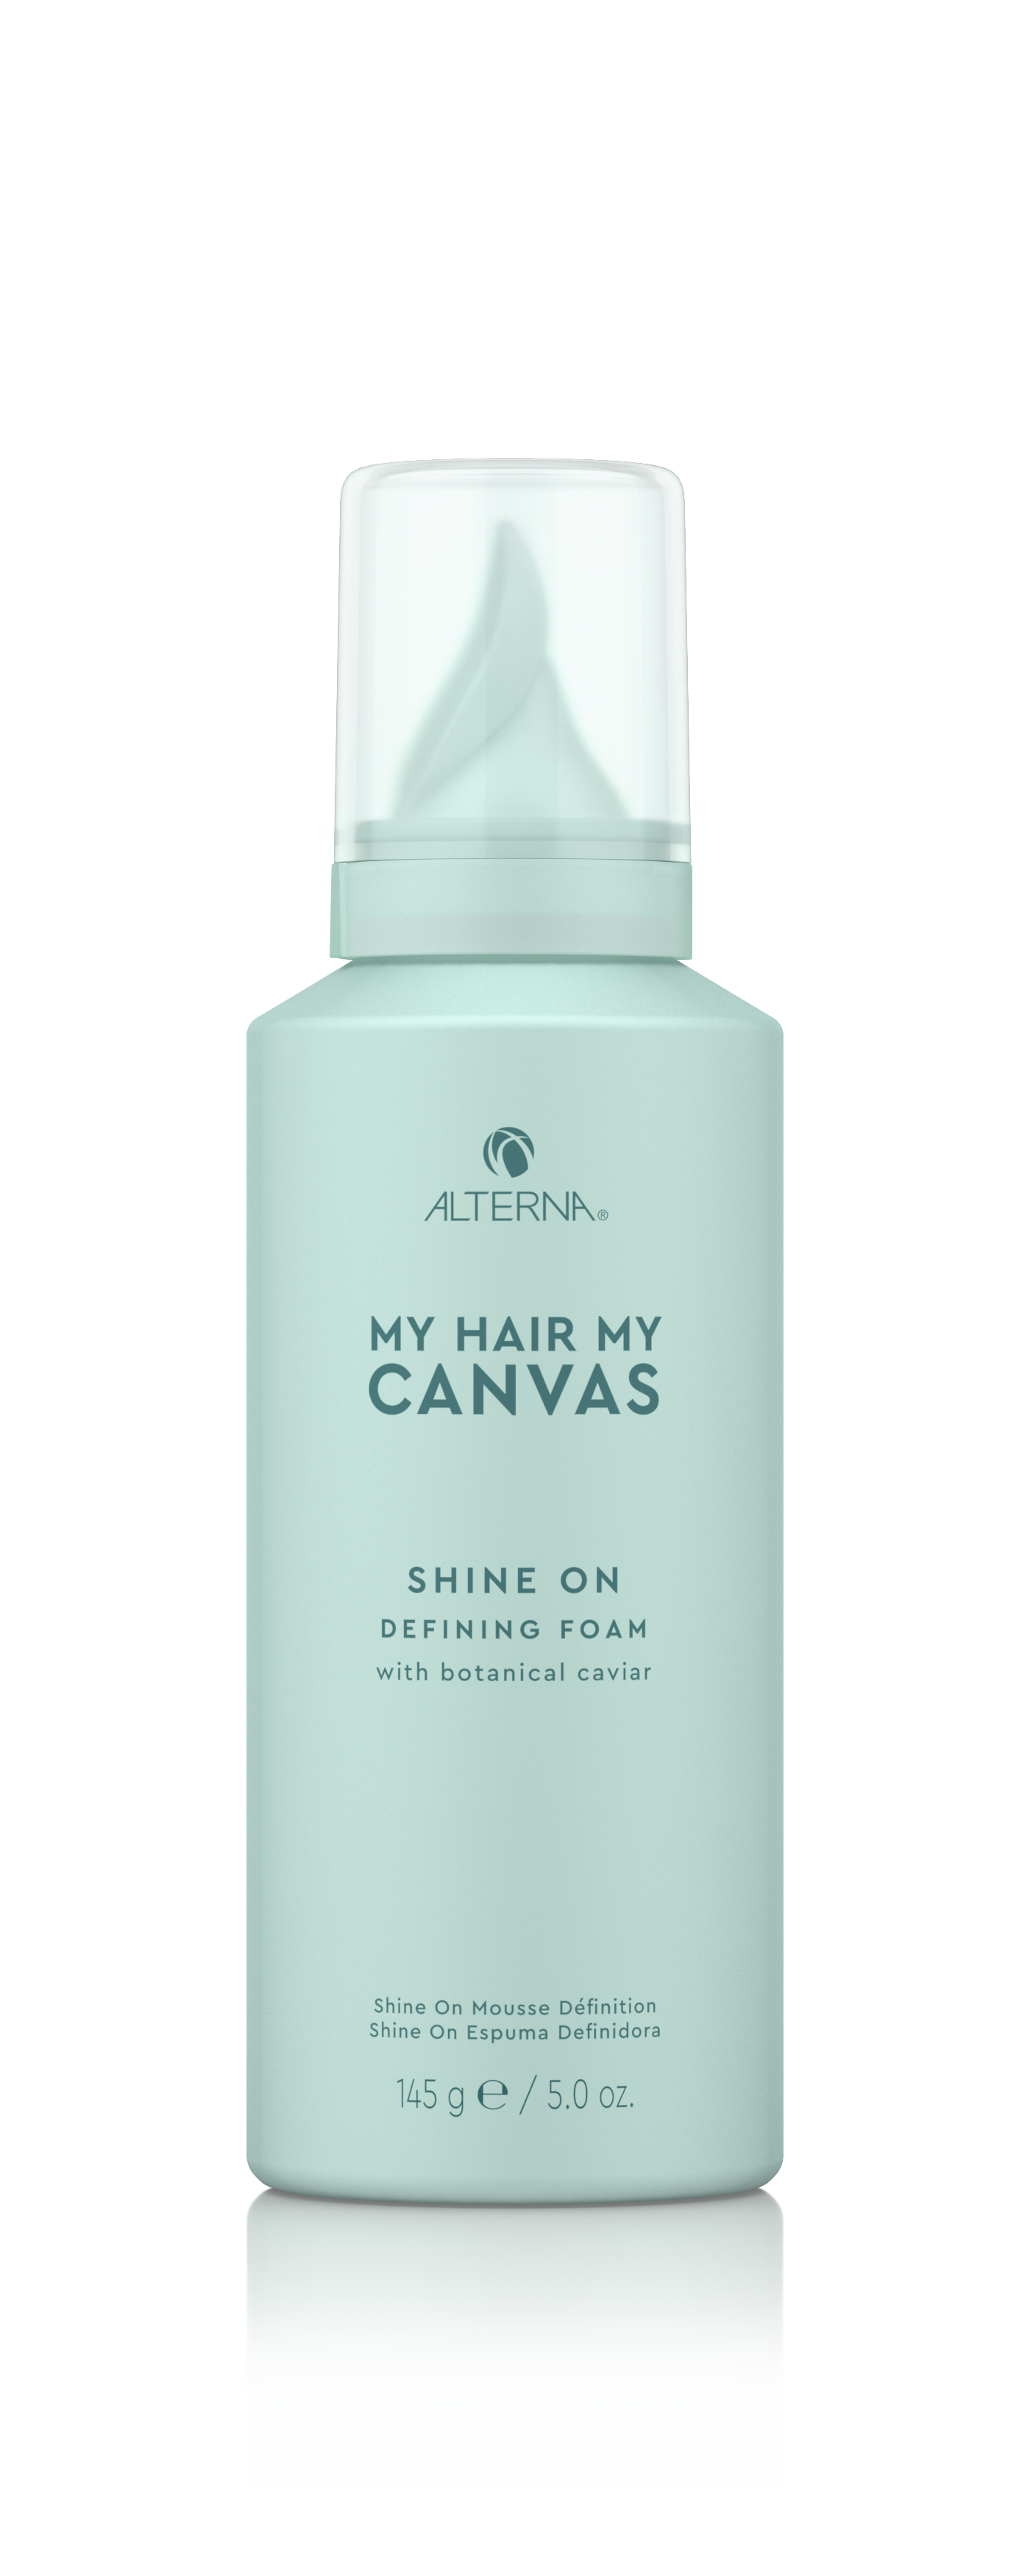 My Hair. My Canvas. Shine On Defining Foam